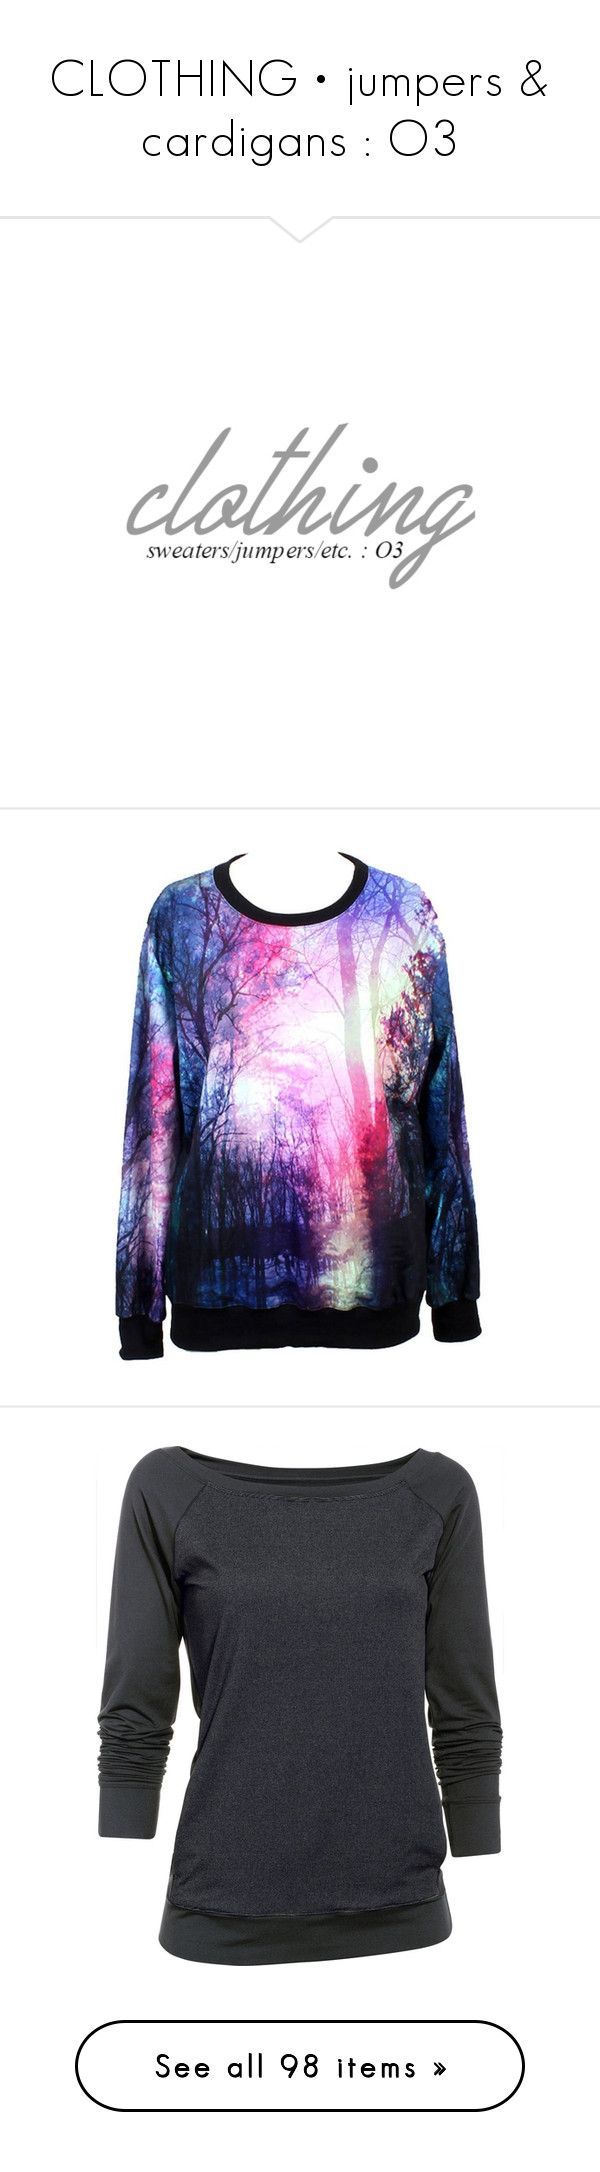 """""""CLOTHING • jumpers & cardigans : O3"""" by xxsweet13etrayalxx ❤ liked on Polyvore featuring tops, hoodies, sweatshirts, shirts, sweaters, multi color shirt, cosmic shirt, colorful shirts, galaxy print shirt and patterned sweatshirt"""